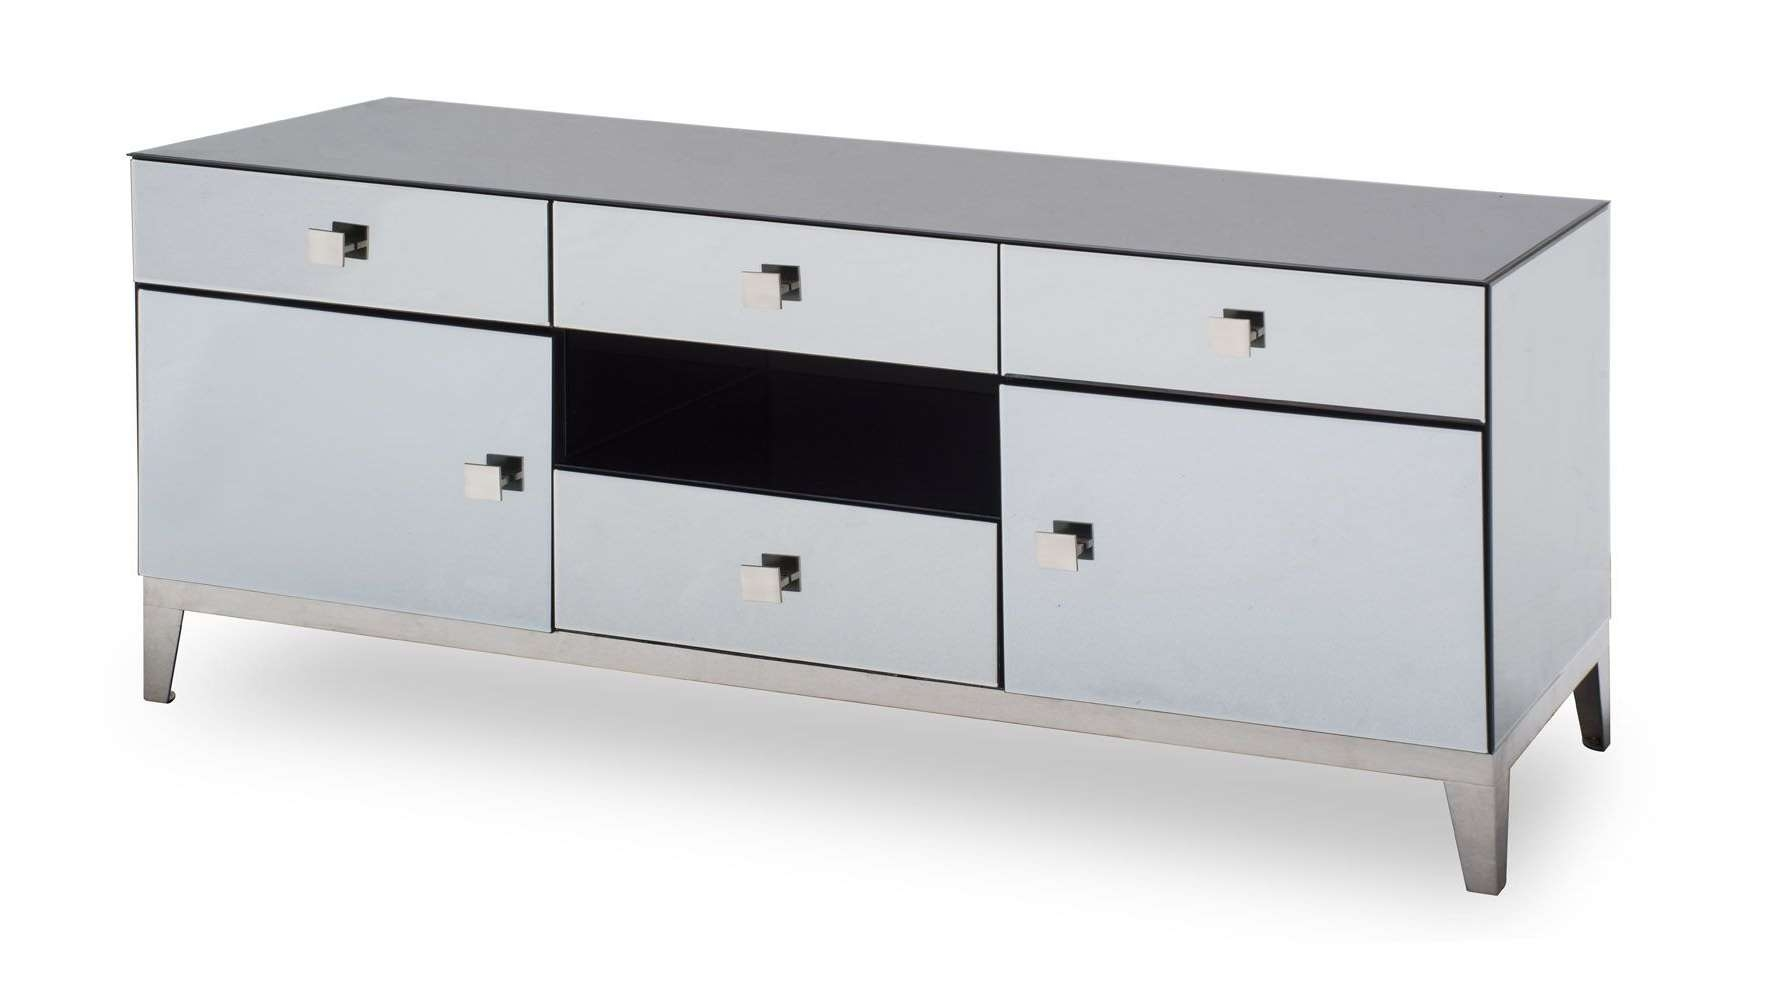 Modern Grey Mirrored Glass Berlin Tv Stand | Zuri Furniture Regarding Mirrored Tv Cabinets (View 12 of 20)